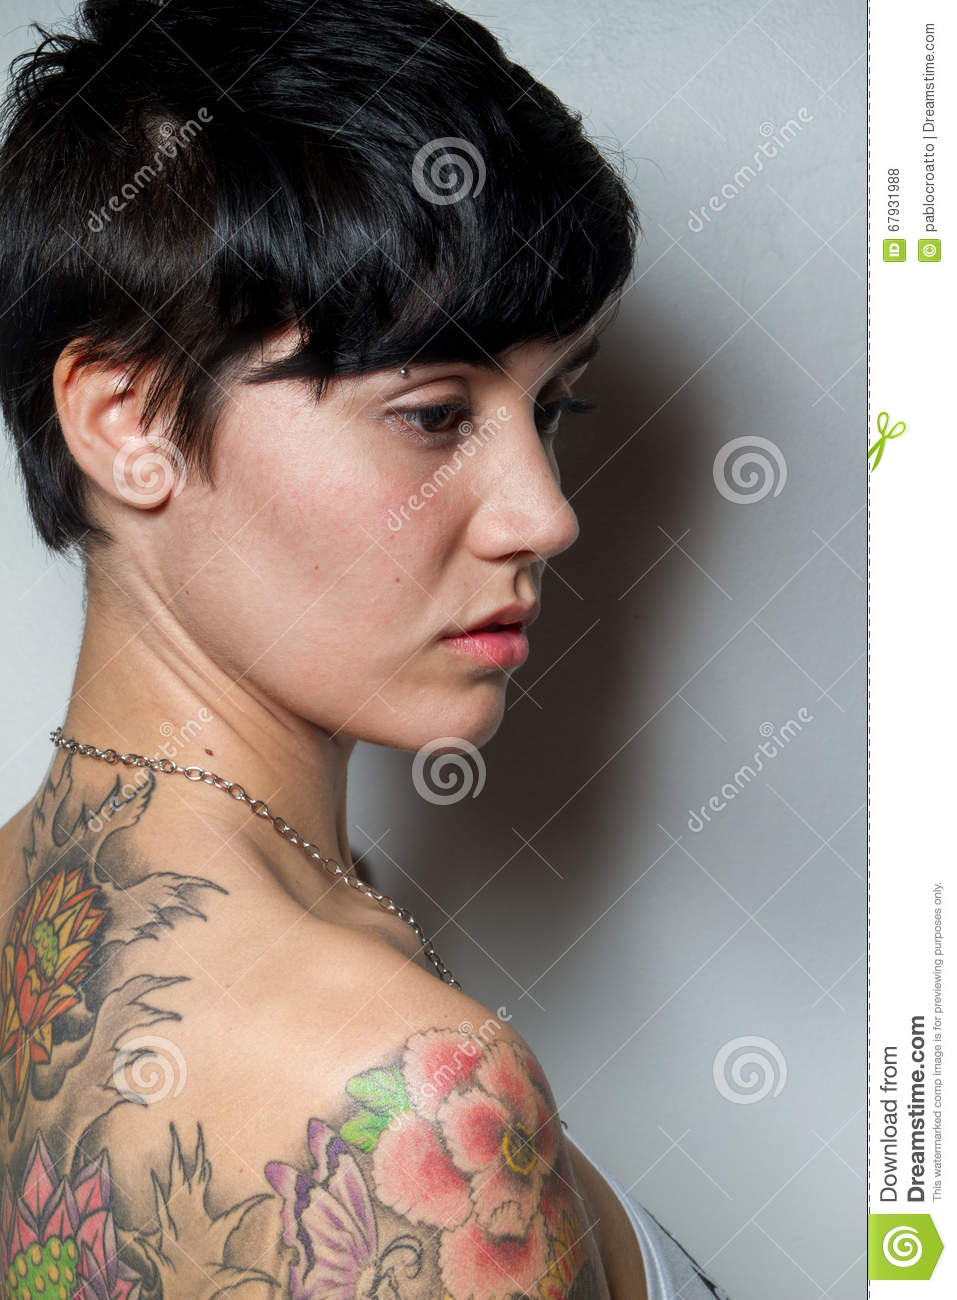 Opinion Adorable shorthaired brunette